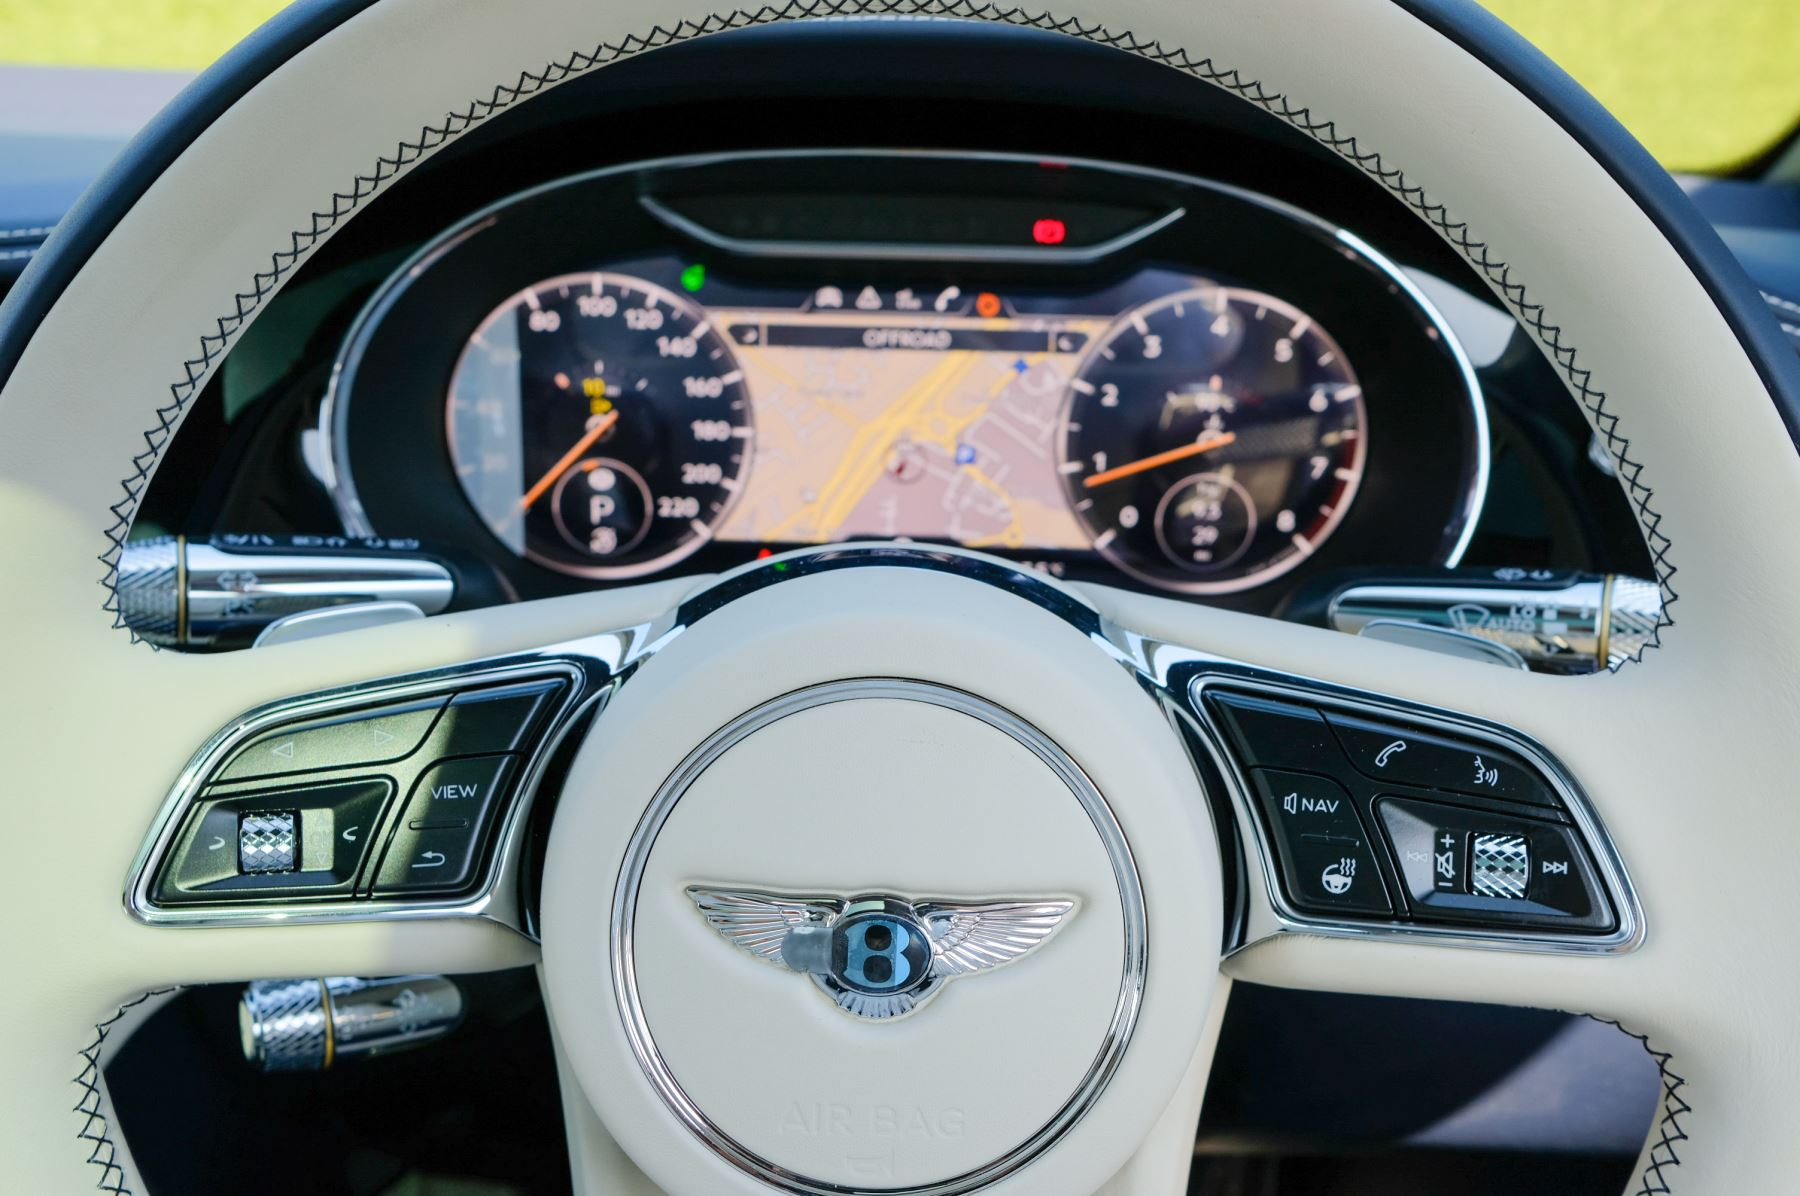 Bentley Continental GT 4.0 V8 Mulliner Edition 2dr Auto - City Specification - Panoramic Glass Roof image 15